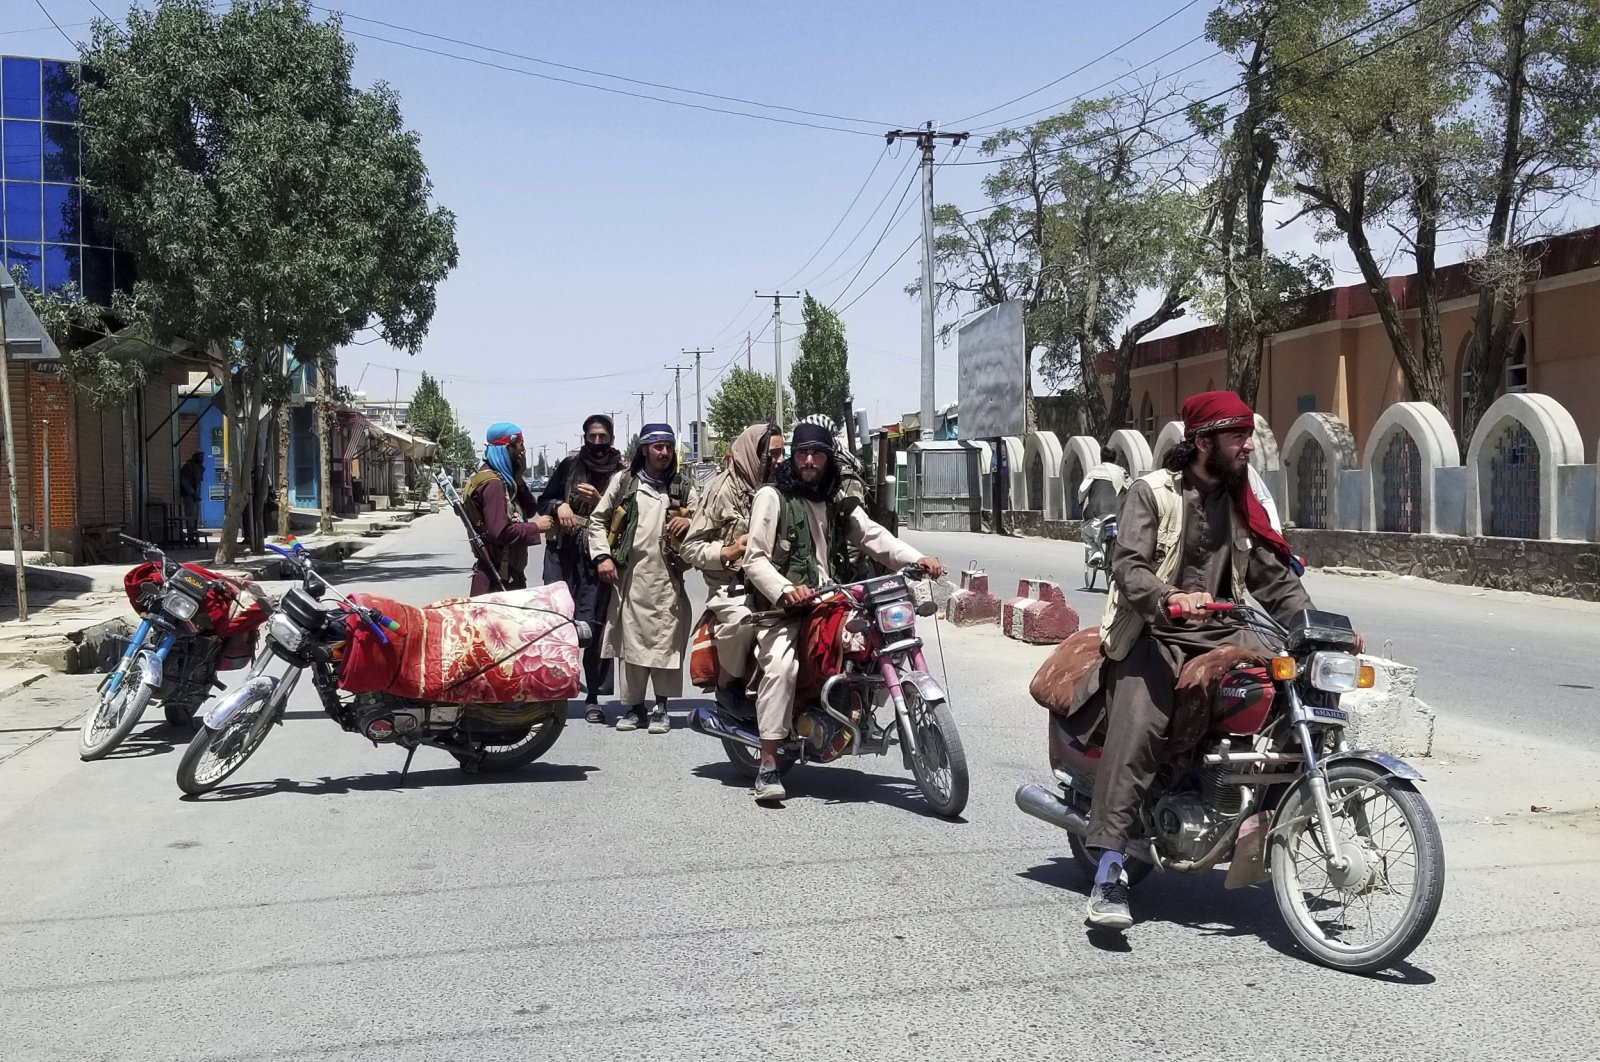 Taliban fighters patrol inside the city of Ghazni, southwest of Kabul, Afghanistan, Aug. 12, 2021. (AP Photo)